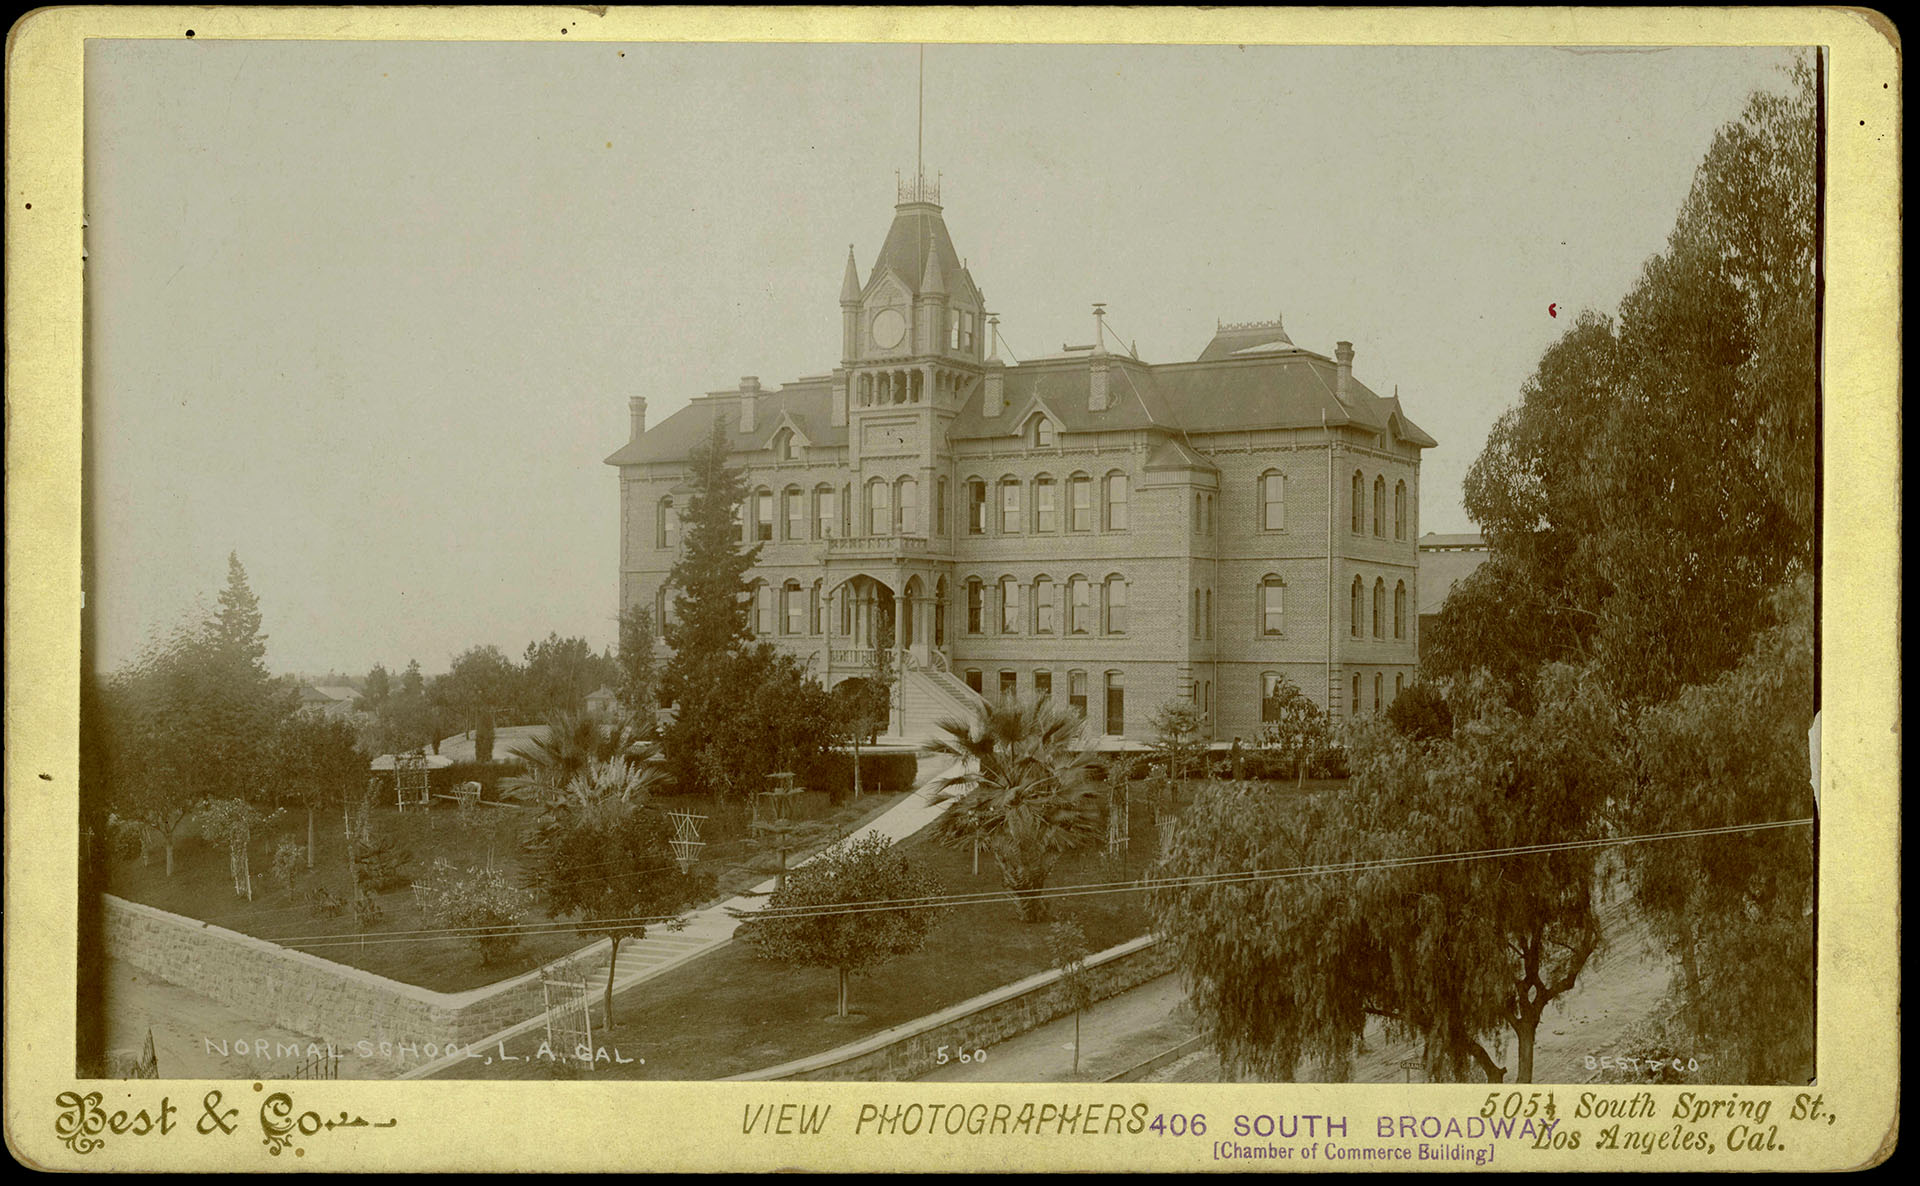 Undated photo print of the State Normal School